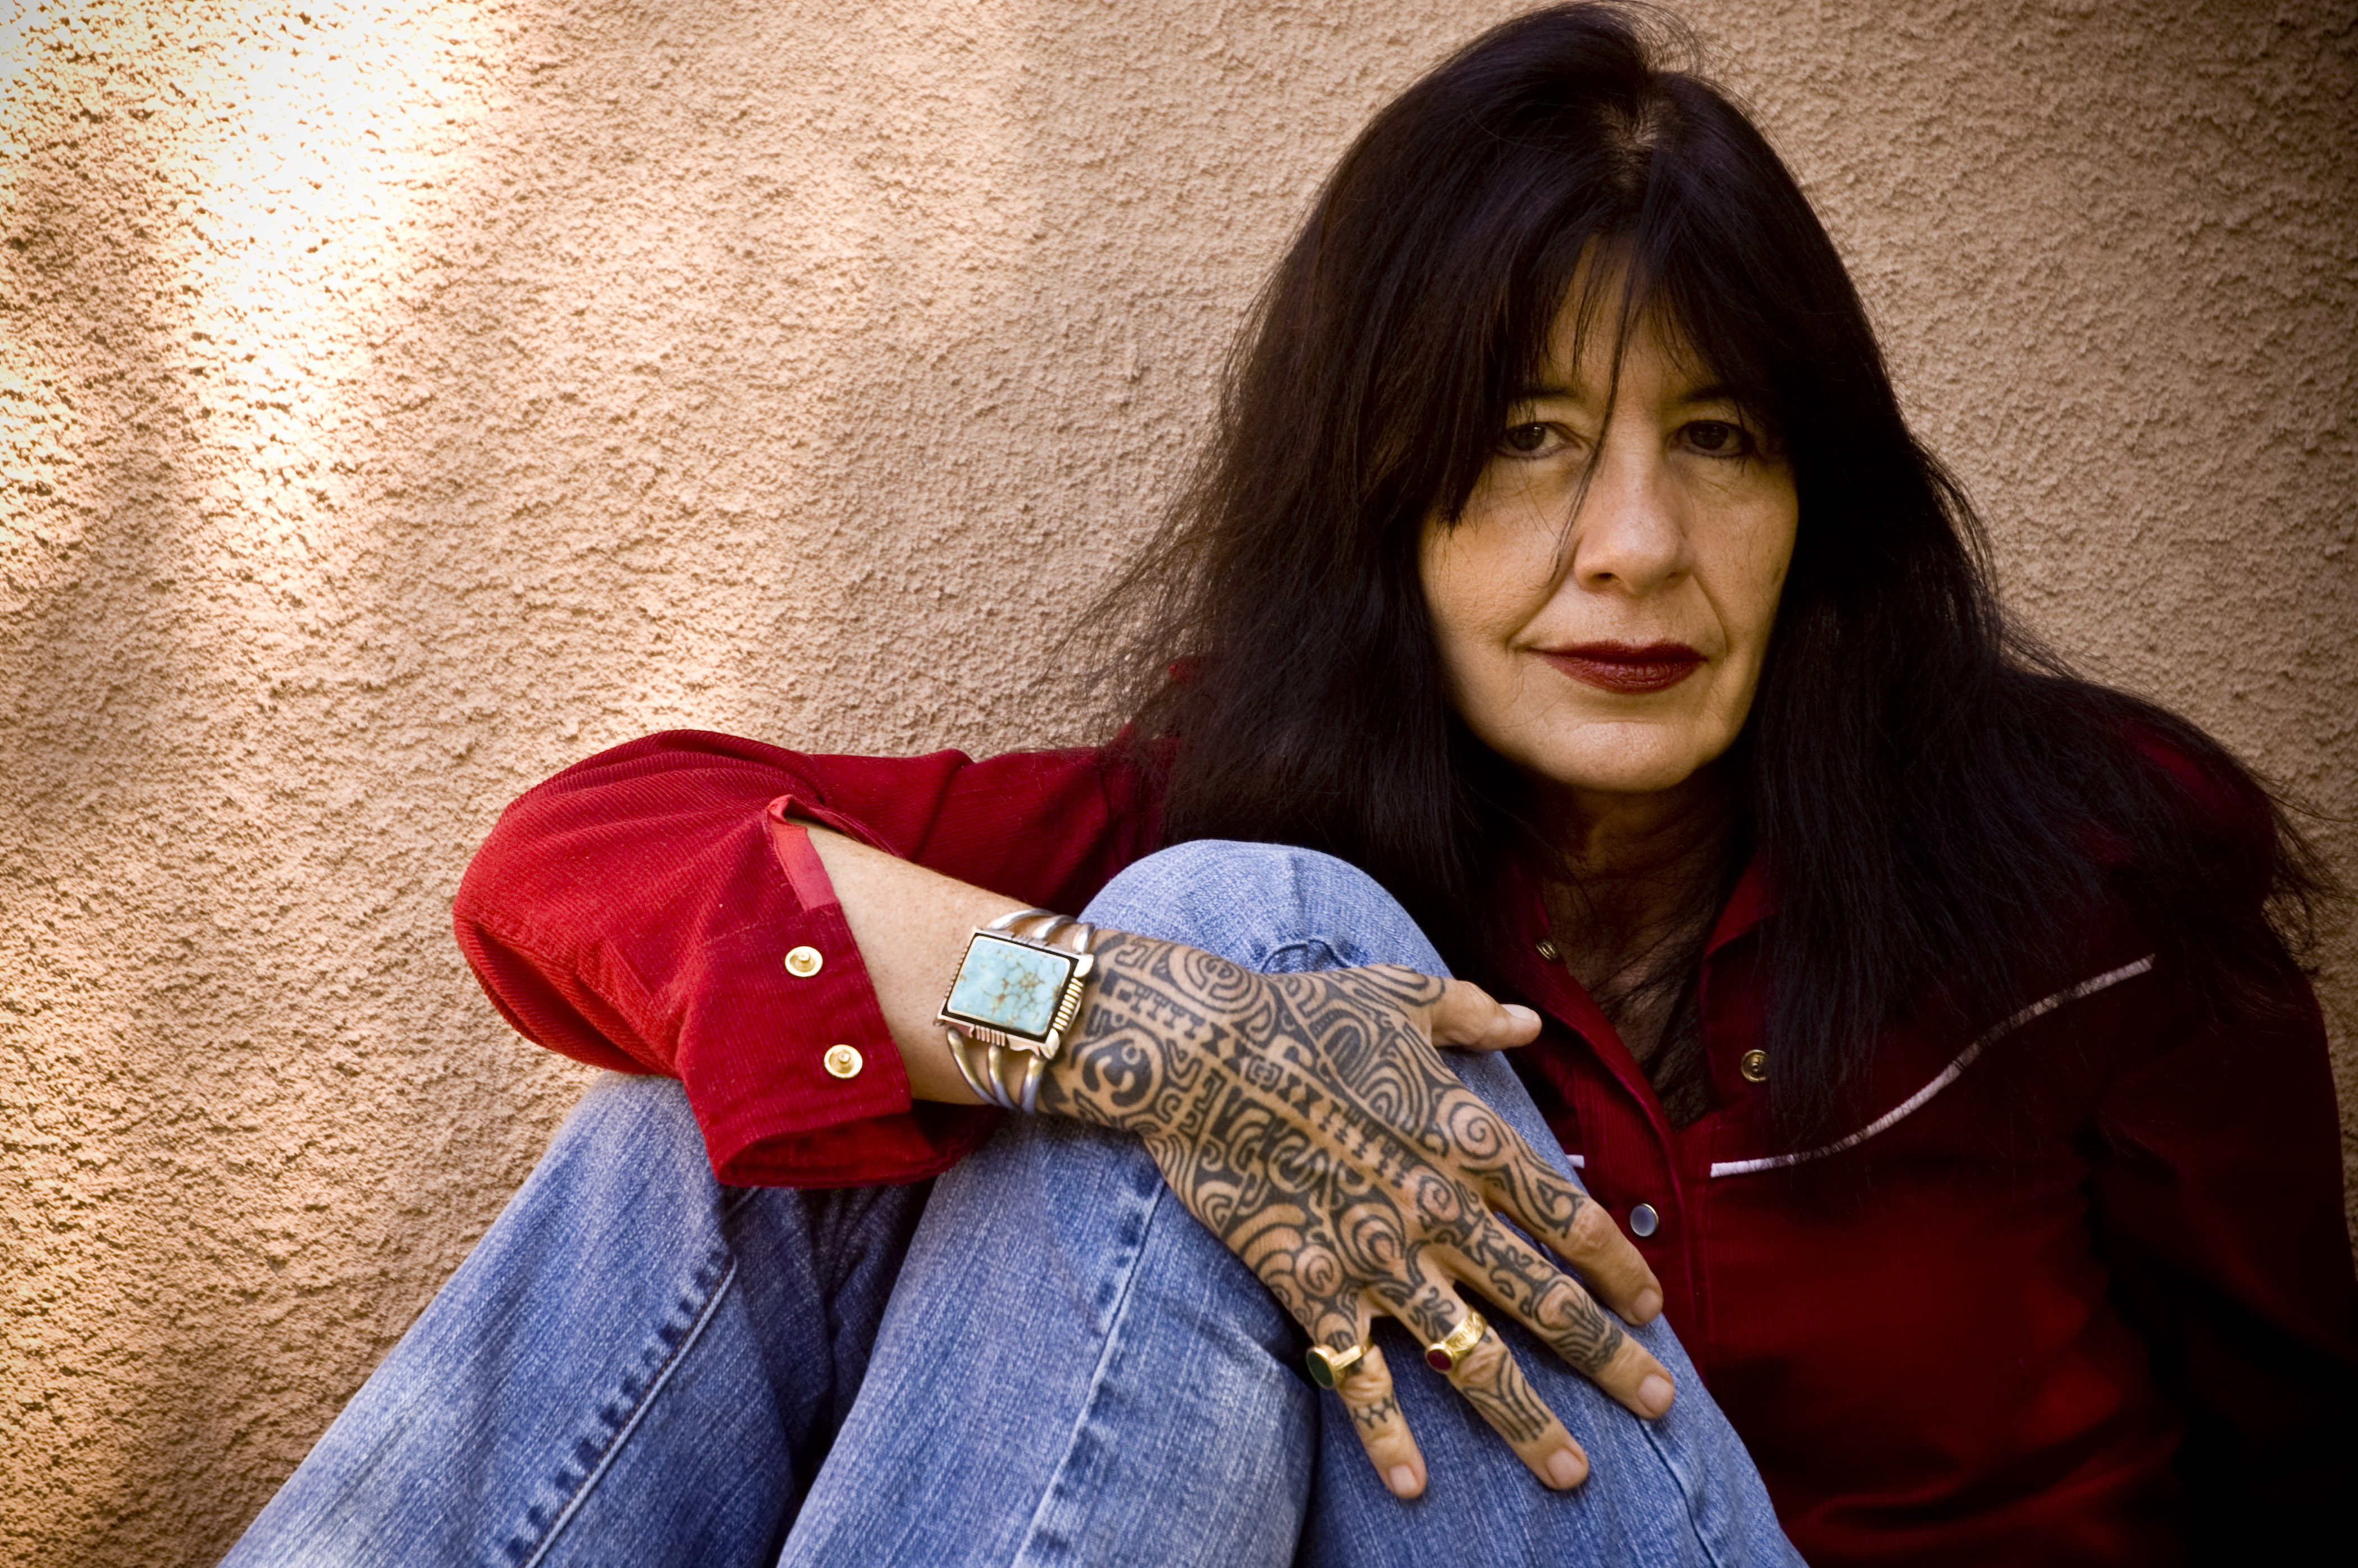 An image of a seated woman leaning on the wall showing a hand with tattoo